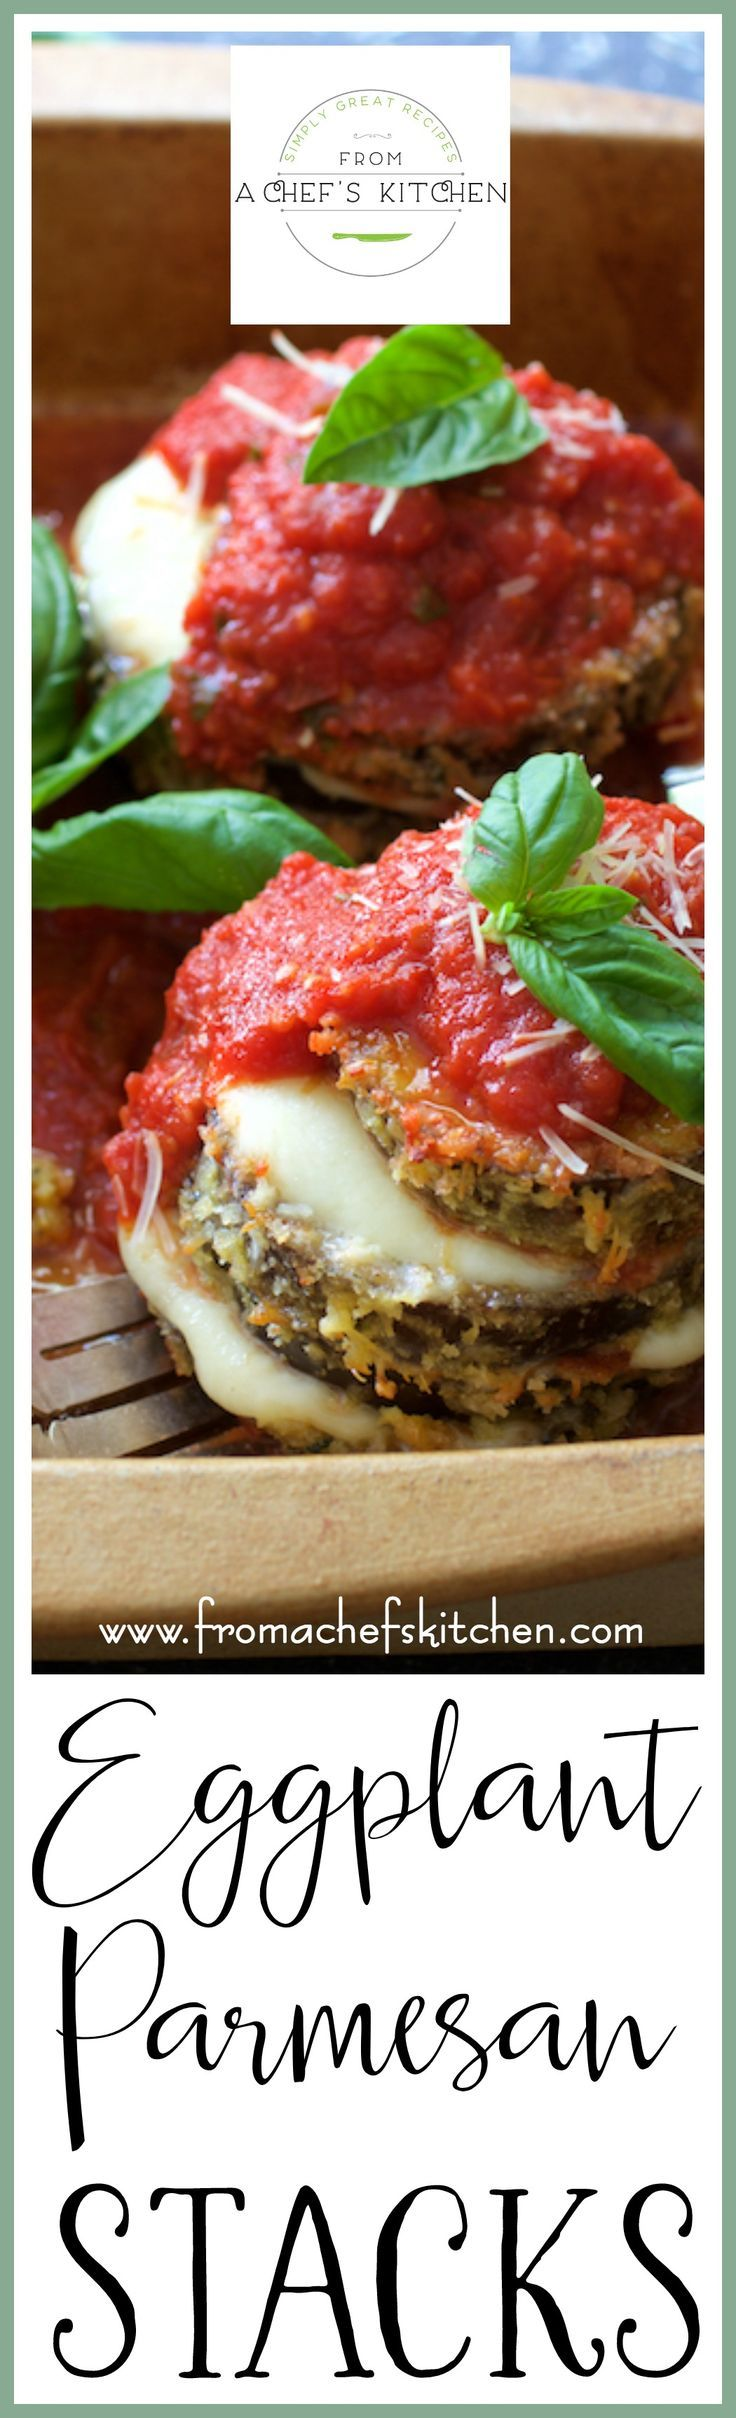 Eggplant Parmesan Stacks are a fresher and lighter way to enjoy an Italian classic! via @chefcarolb